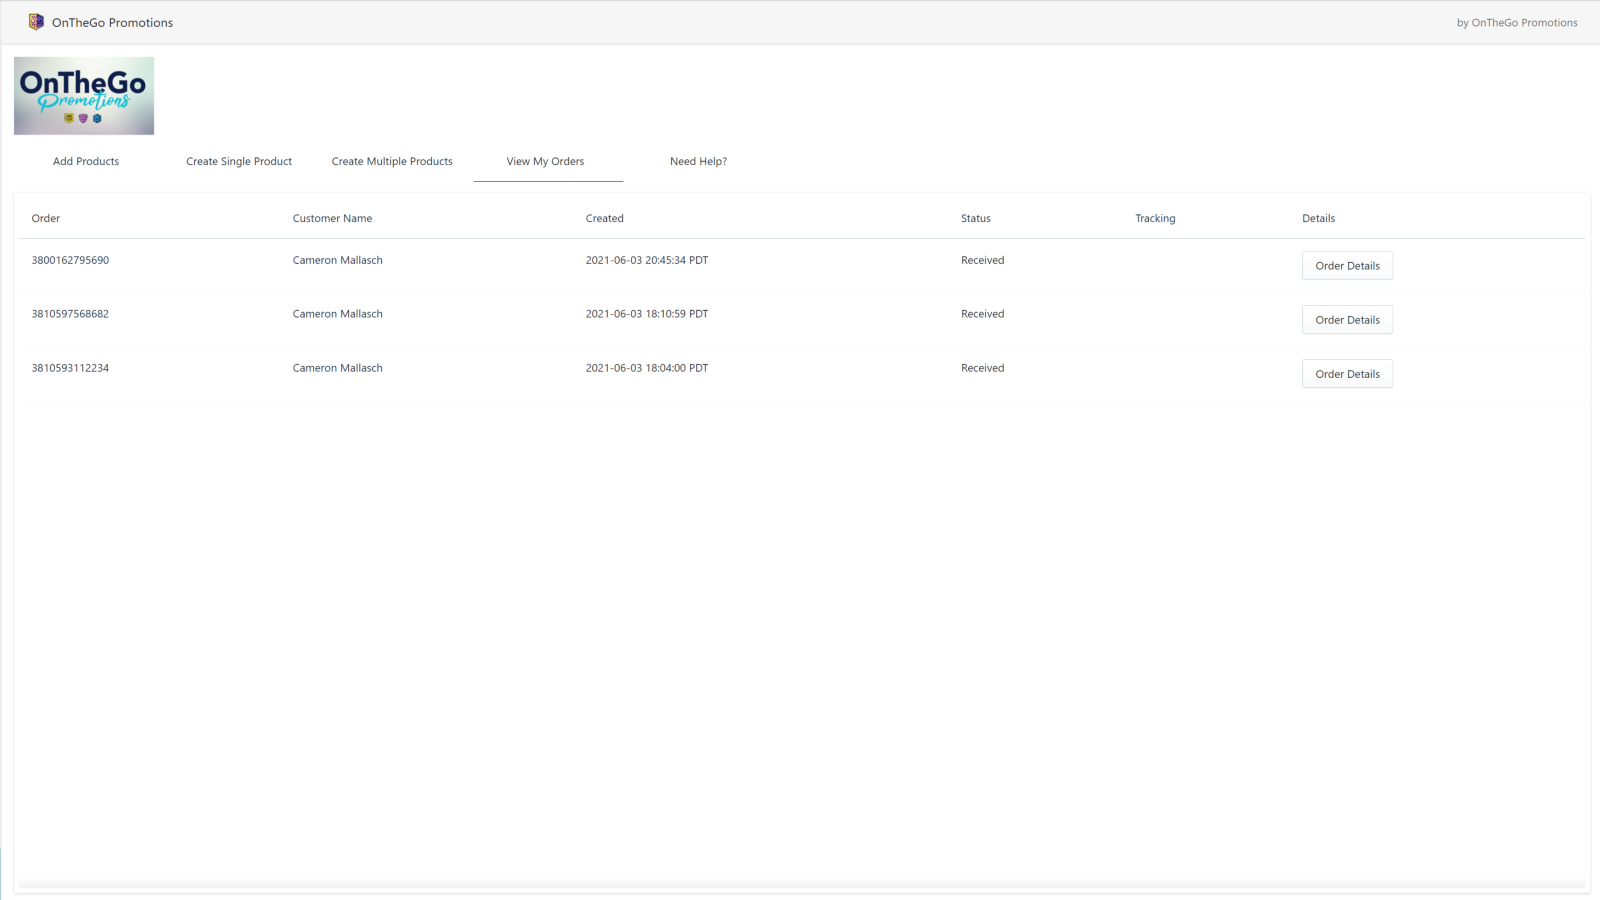 View created orders and details